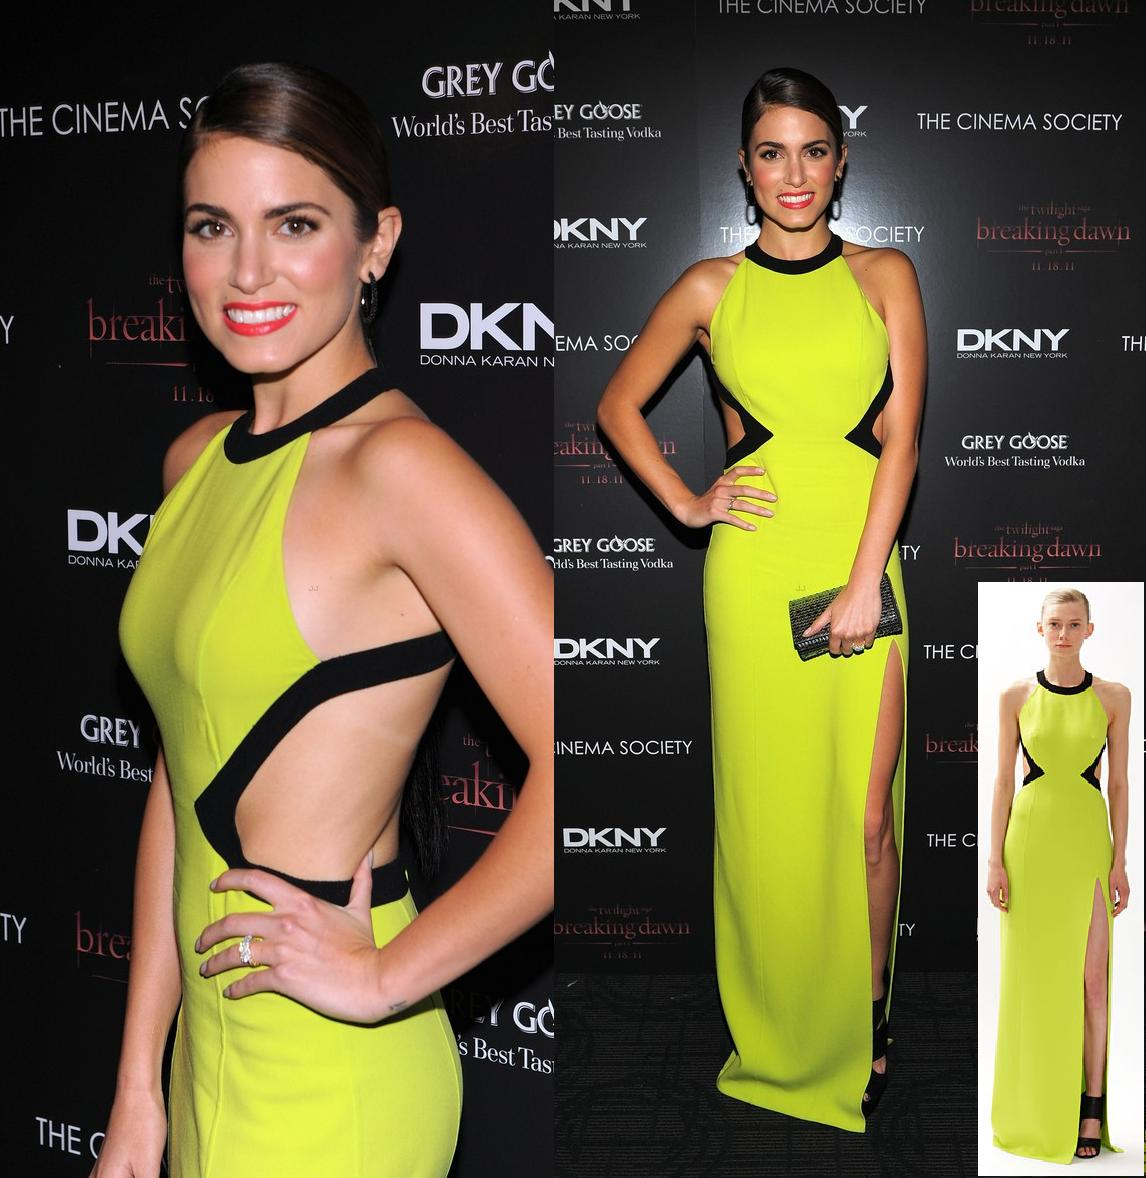 http://4.bp.blogspot.com/-F-r-OfyvdEw/TsVWFX0qTNI/AAAAAAAACv8/Txqeh6wDhxo/s1600/nikki-reed-ashley-greene-breaking-dawn-nyc-04.jpg